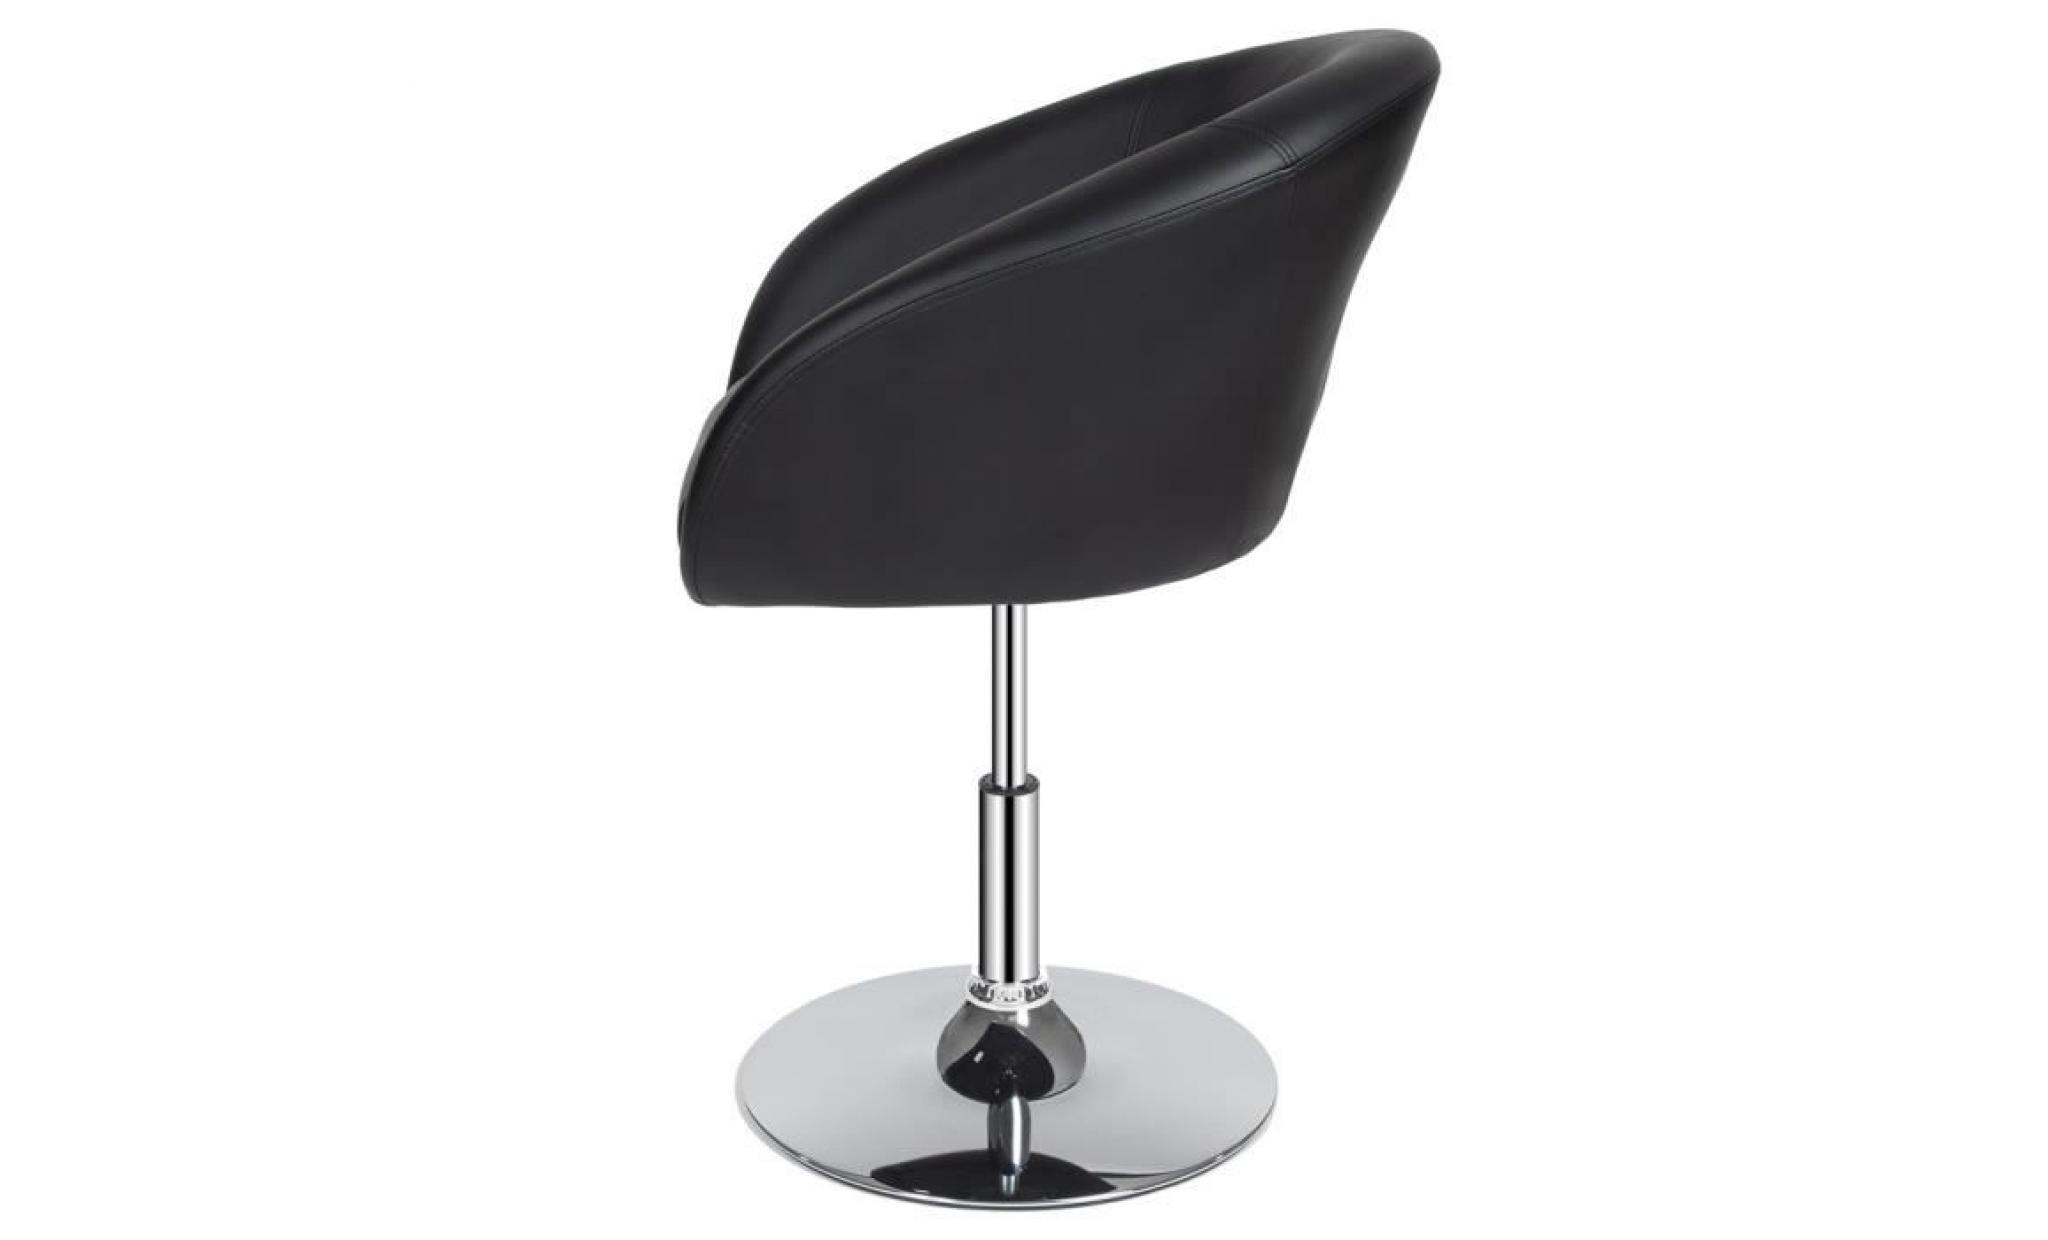 Tabouret de bar tabouret de bar design chaise de bar for Chaise et tabouret